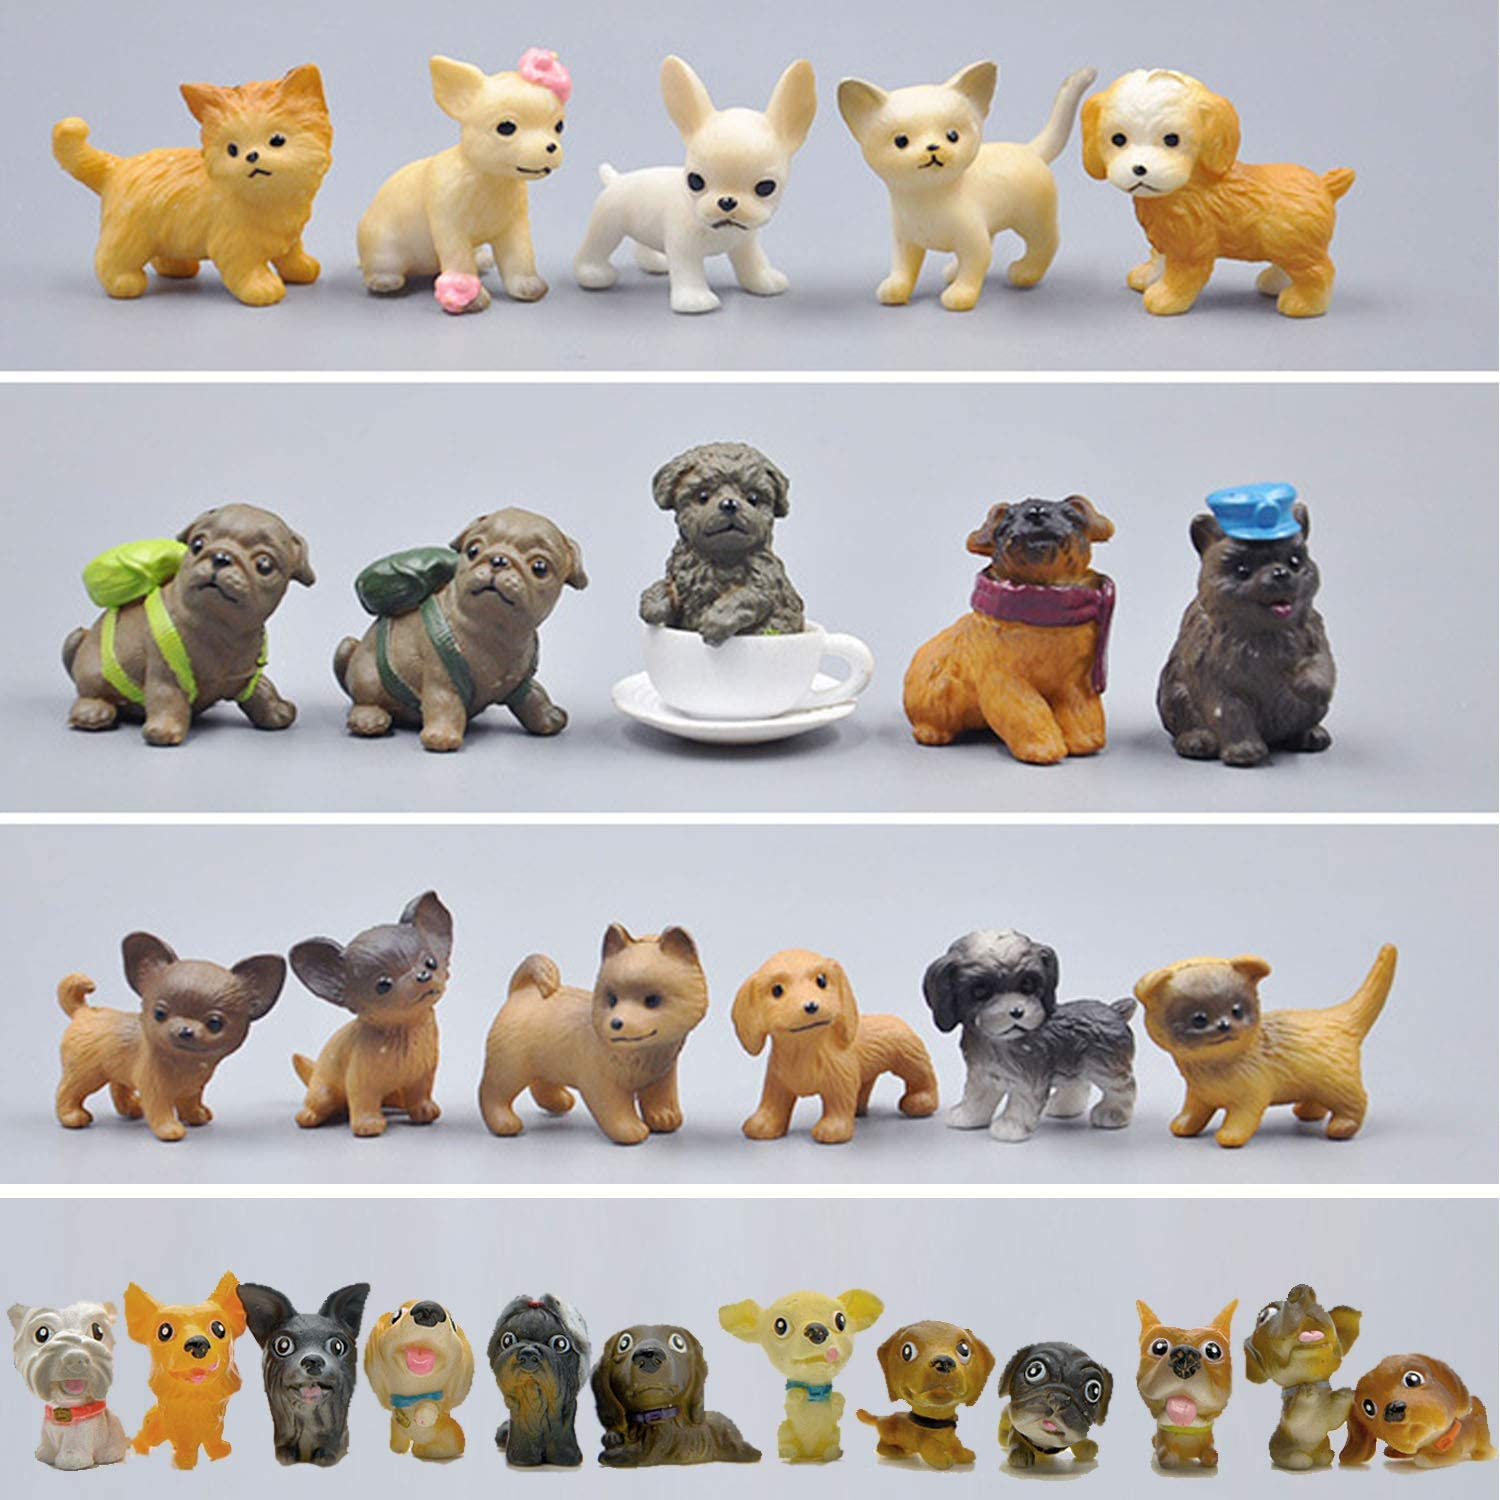 Mini Plastic Puppy Dog Figurines for Kids, 28 Pack High Imitation Detailed Hand Painted Realistic Small Dog Figurines Toy Set